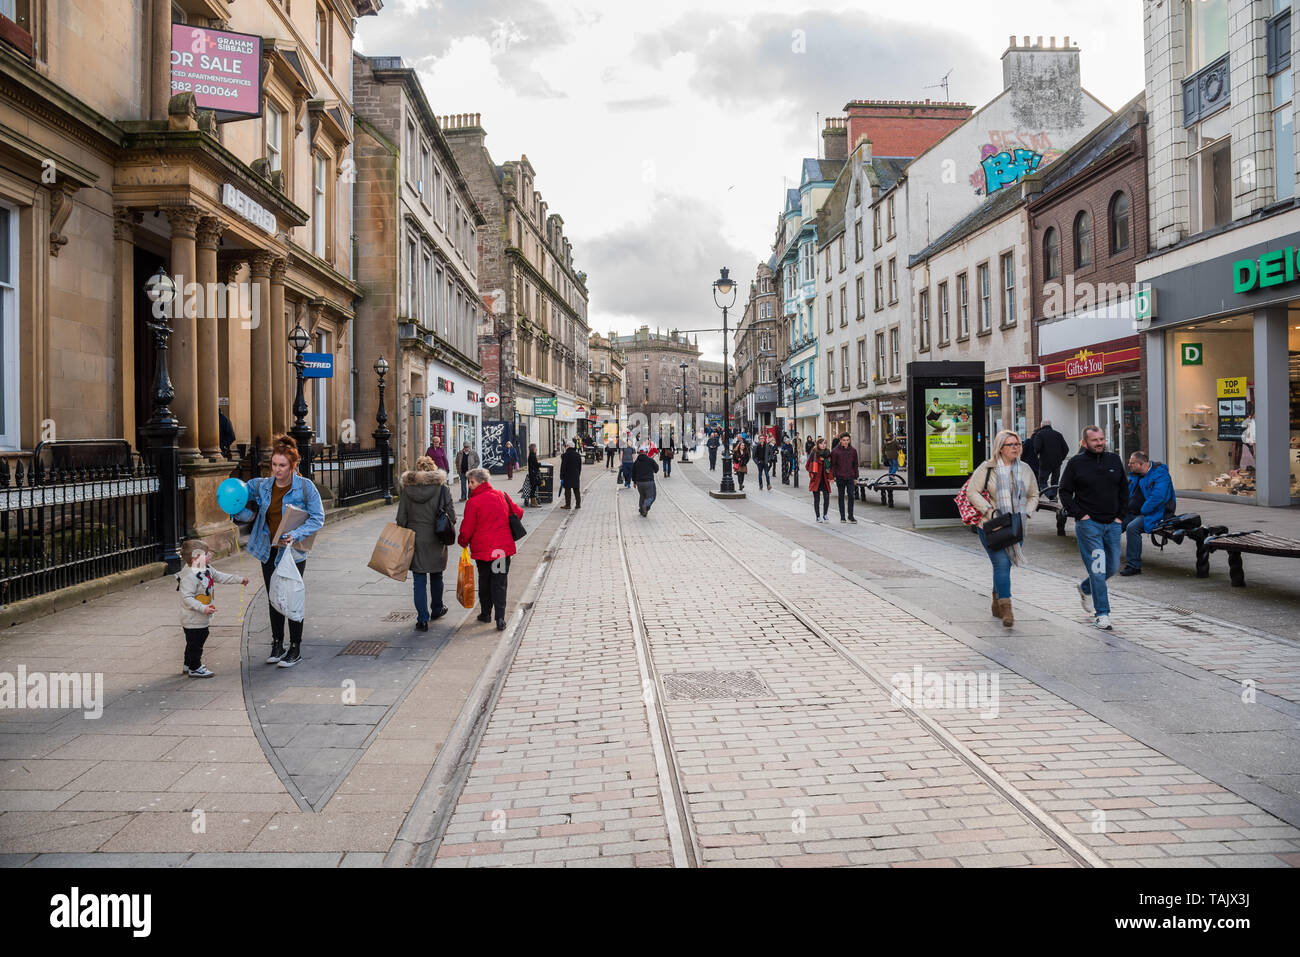 Dundee, UK - March 8, 2018: people strolling along a shopping pedestrian streeton a cloudy winter day - Stock Image